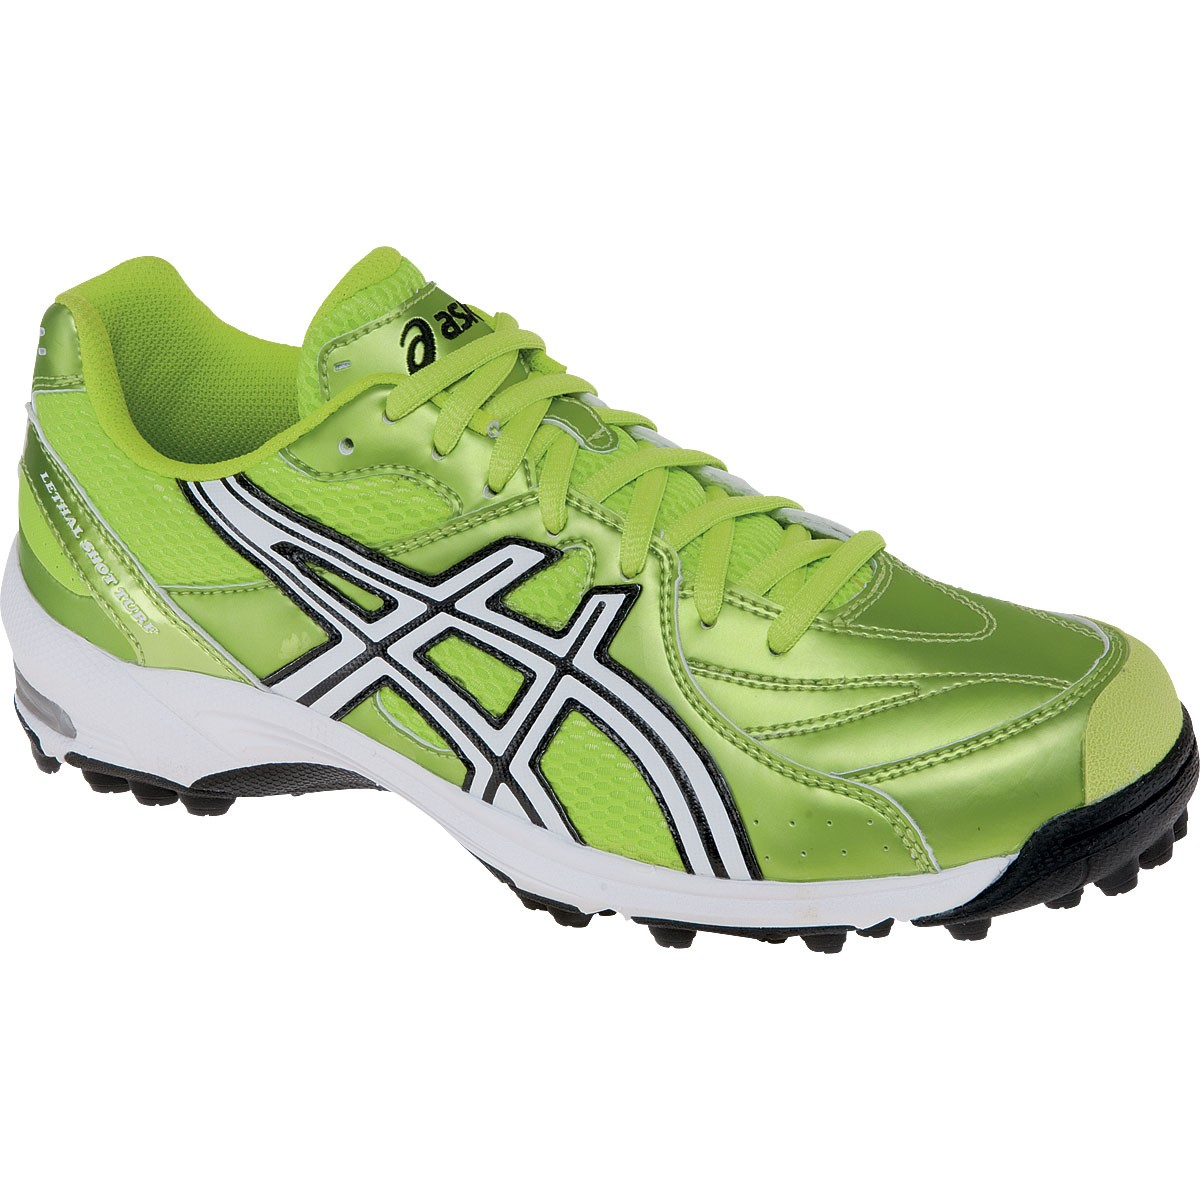 asics gel lethal turf s turf shoes p259y 8001